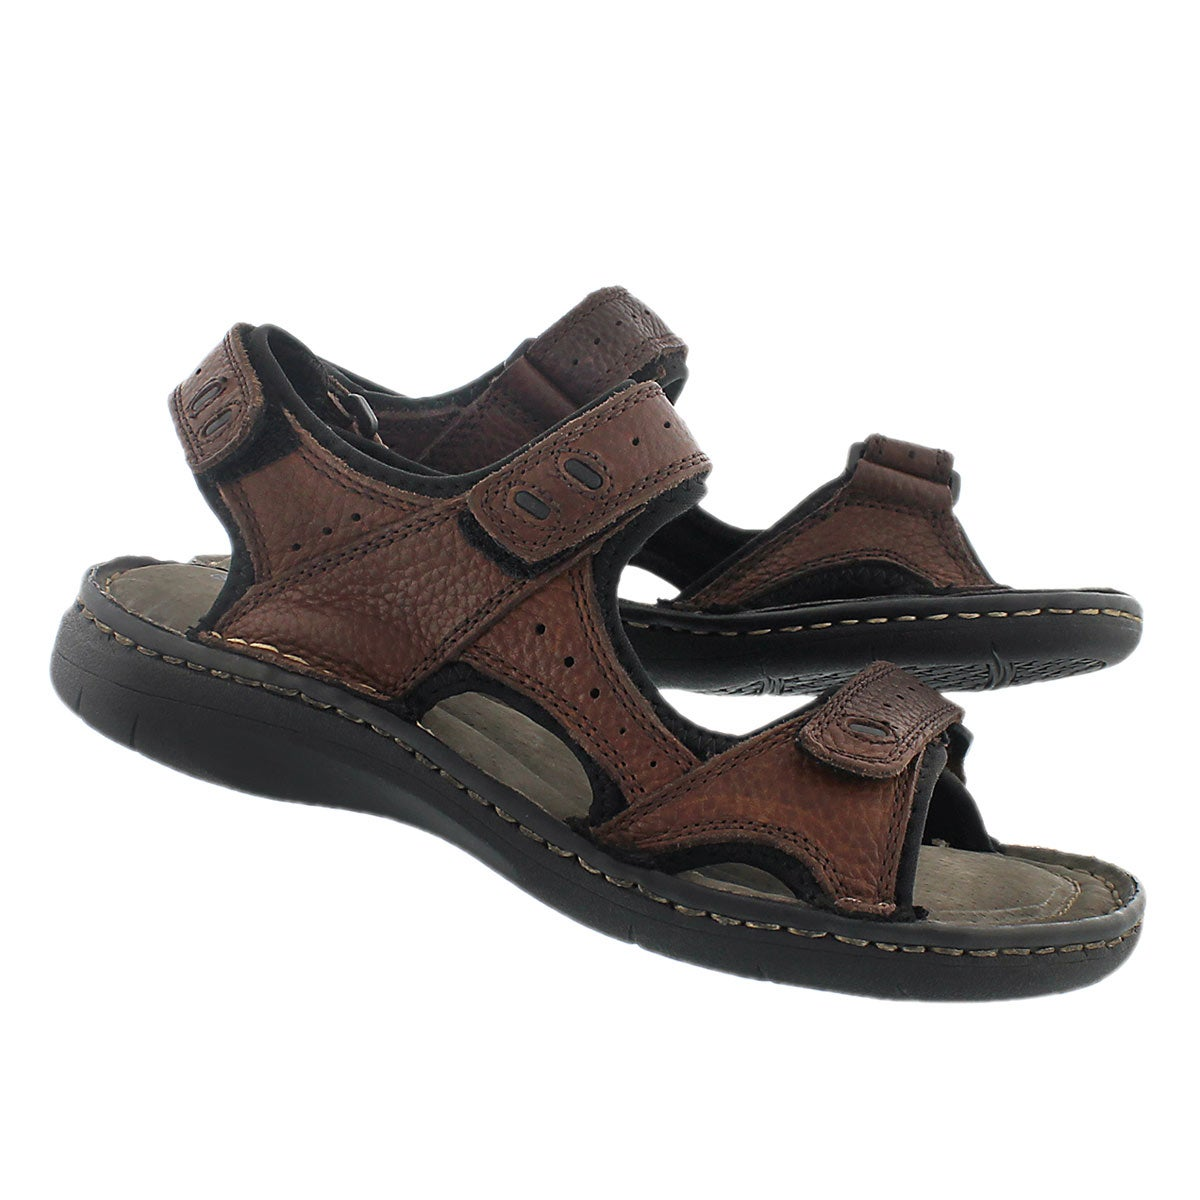 Mns Curtis 3 brown 3 strap sandal